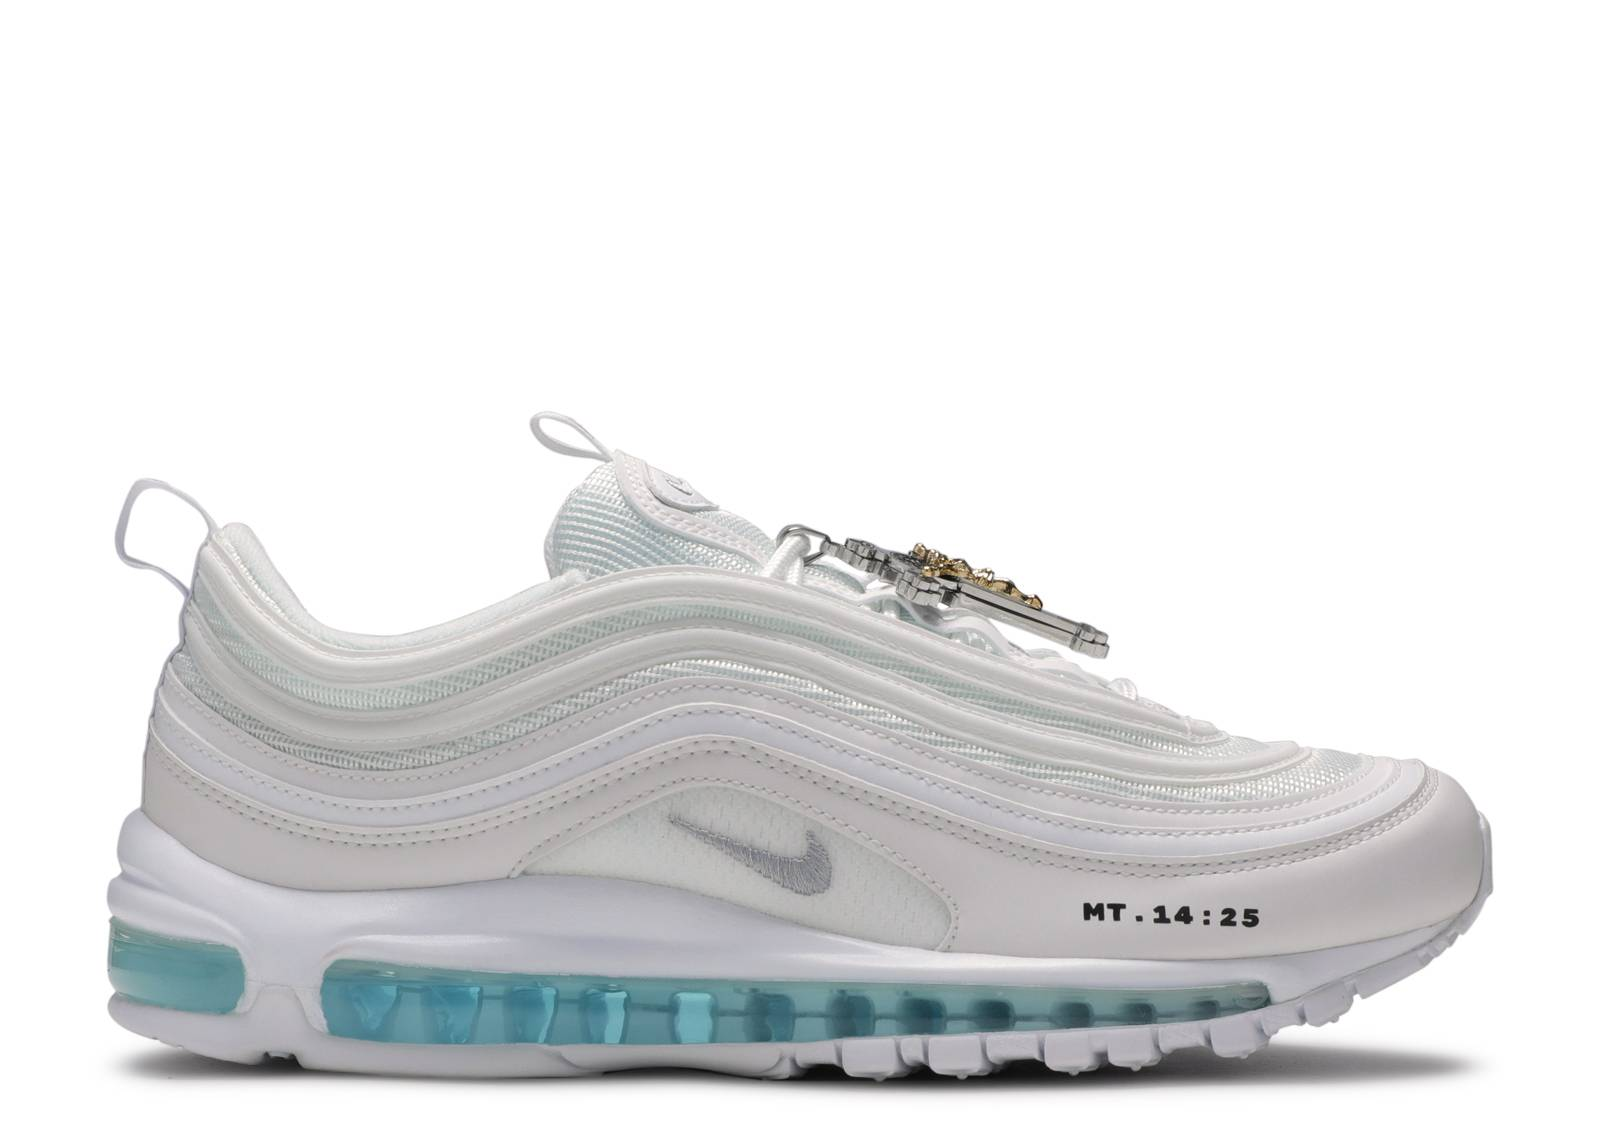 Nike Air Max 97 Og Qs Black And Green Limited Running Shoes